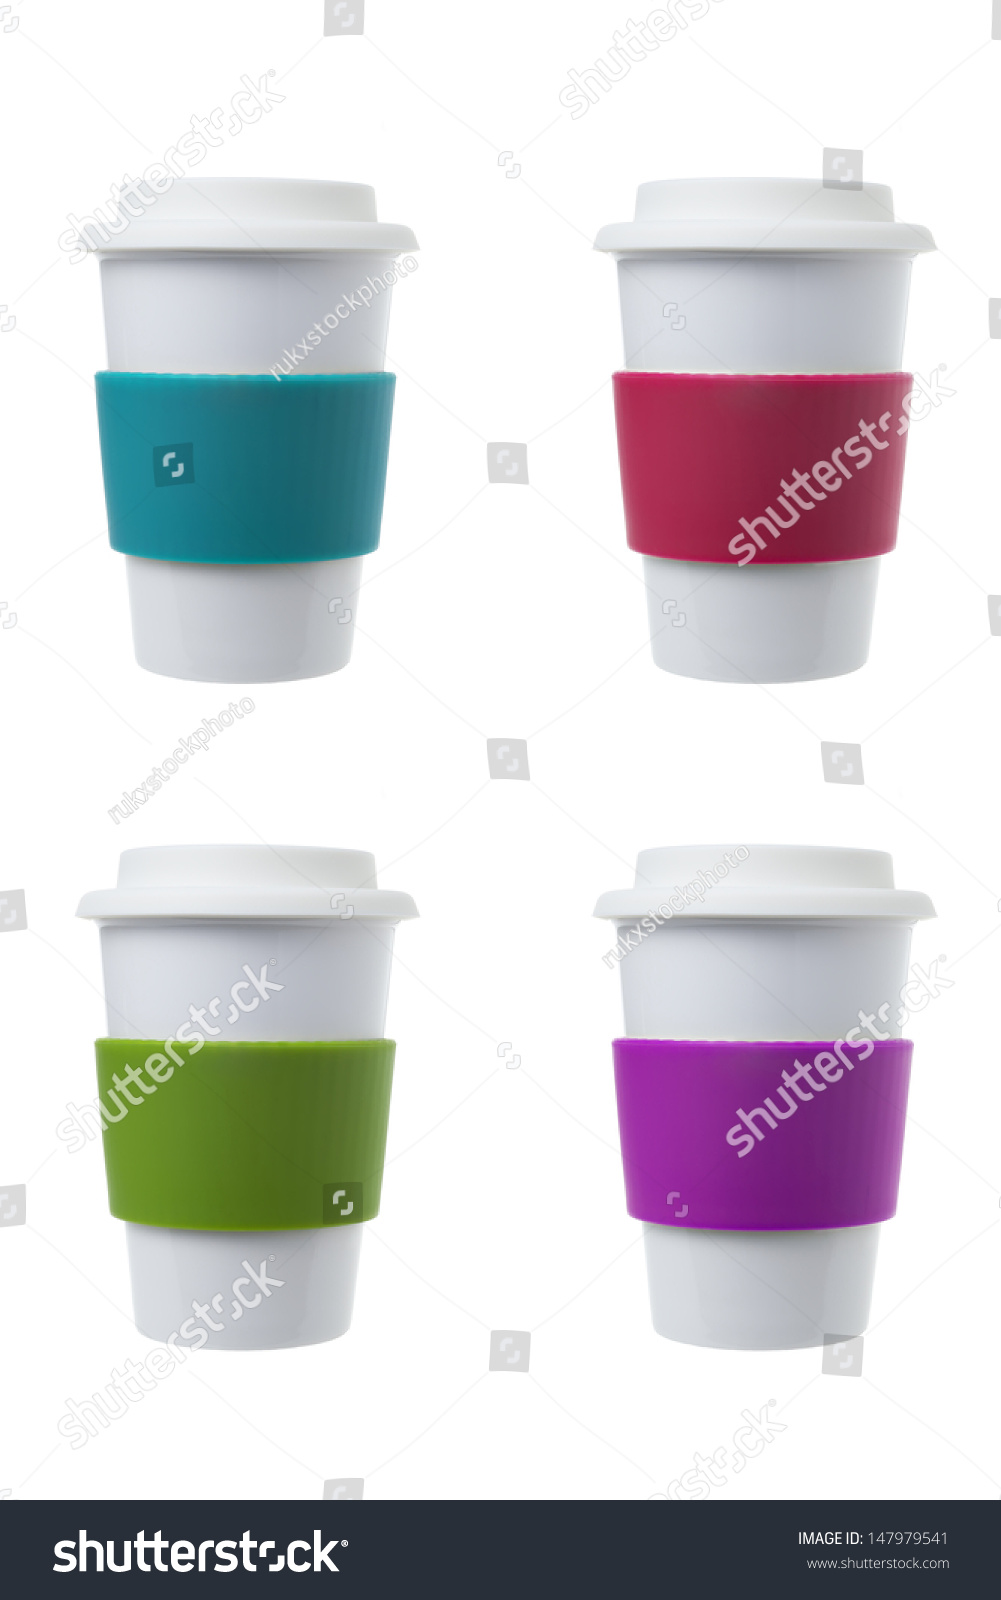 Coffee Cup With Colorful Silicone Sleeve Stock Photo